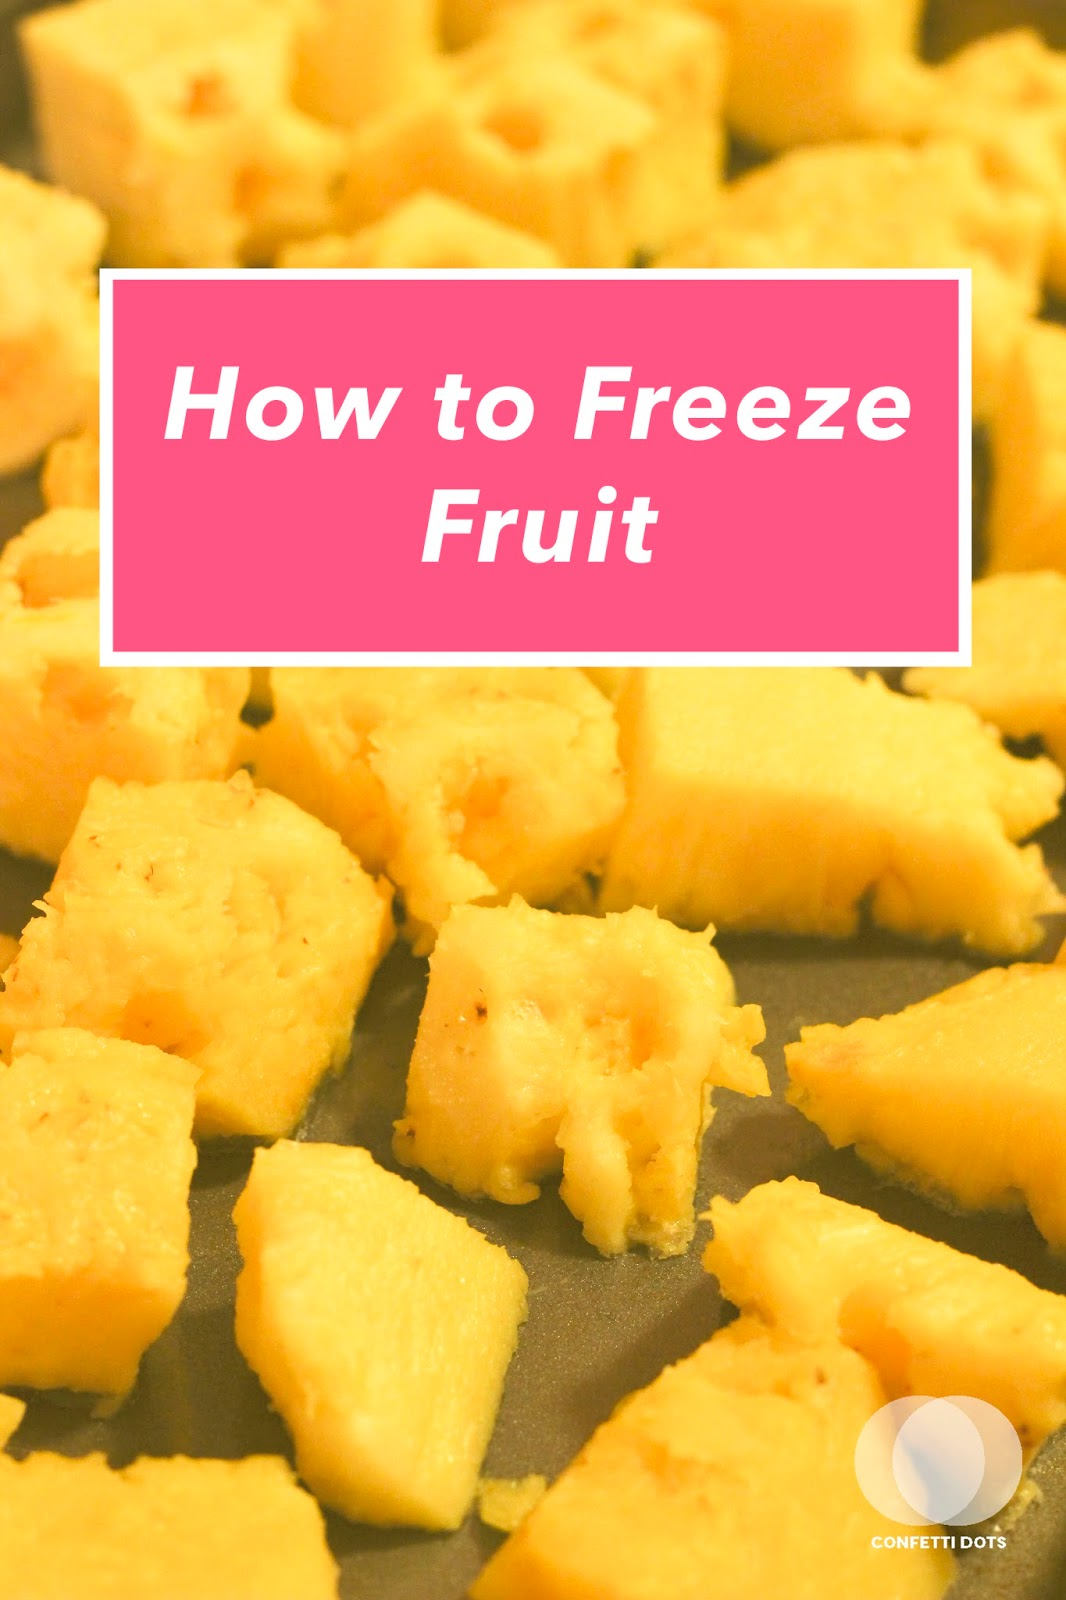 How to Freeze Fruit | Confetti Dots Blog | www.confettidots.blogspot.com